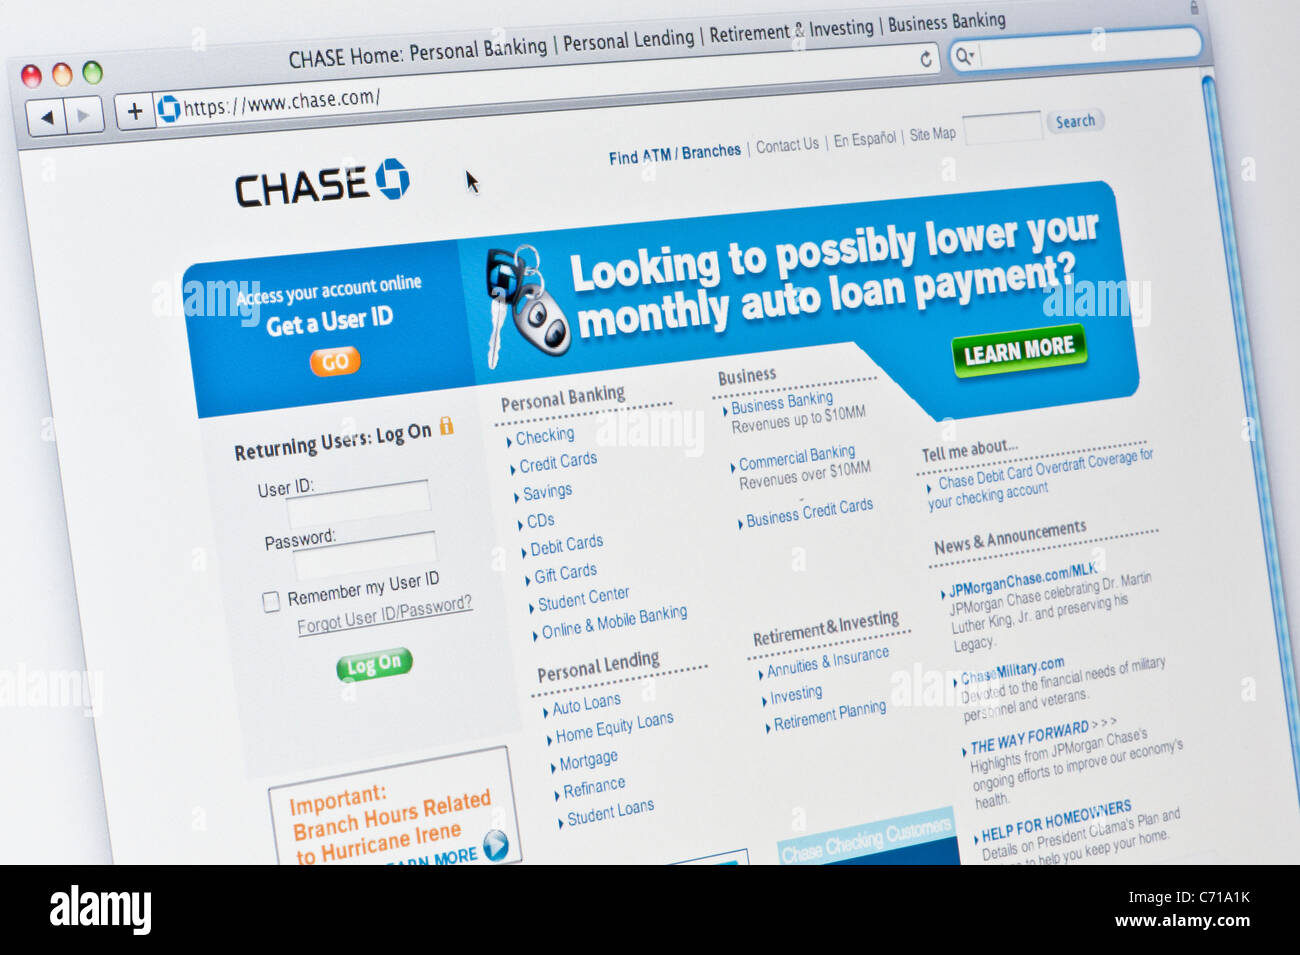 Chase Bank Stock Photos & Chase Bank Stock Images - Alamy